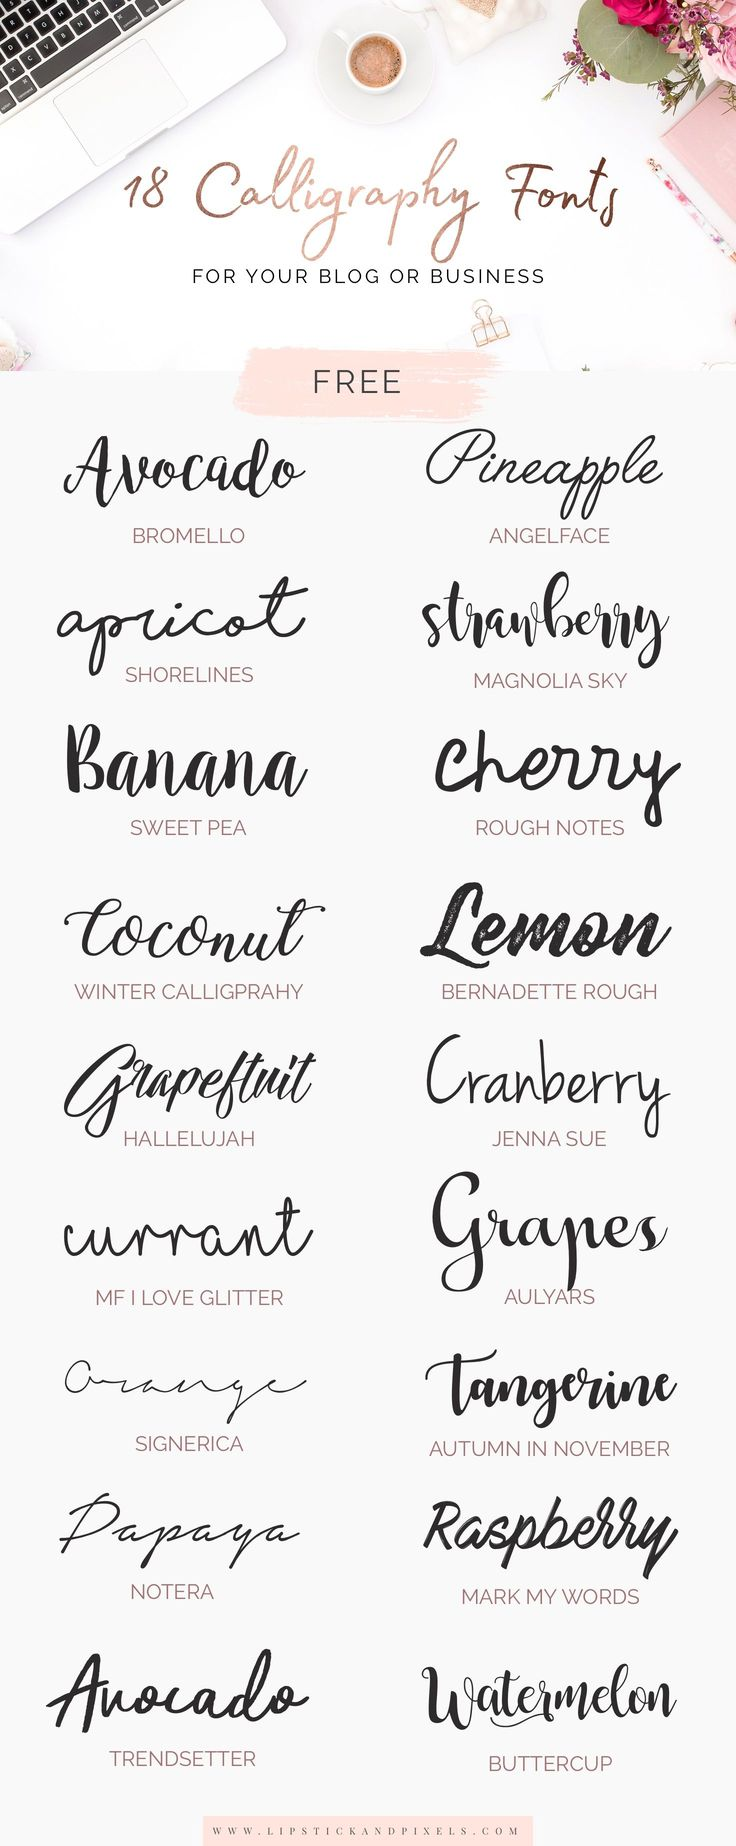 Best ideas about calligraphy on pinterest